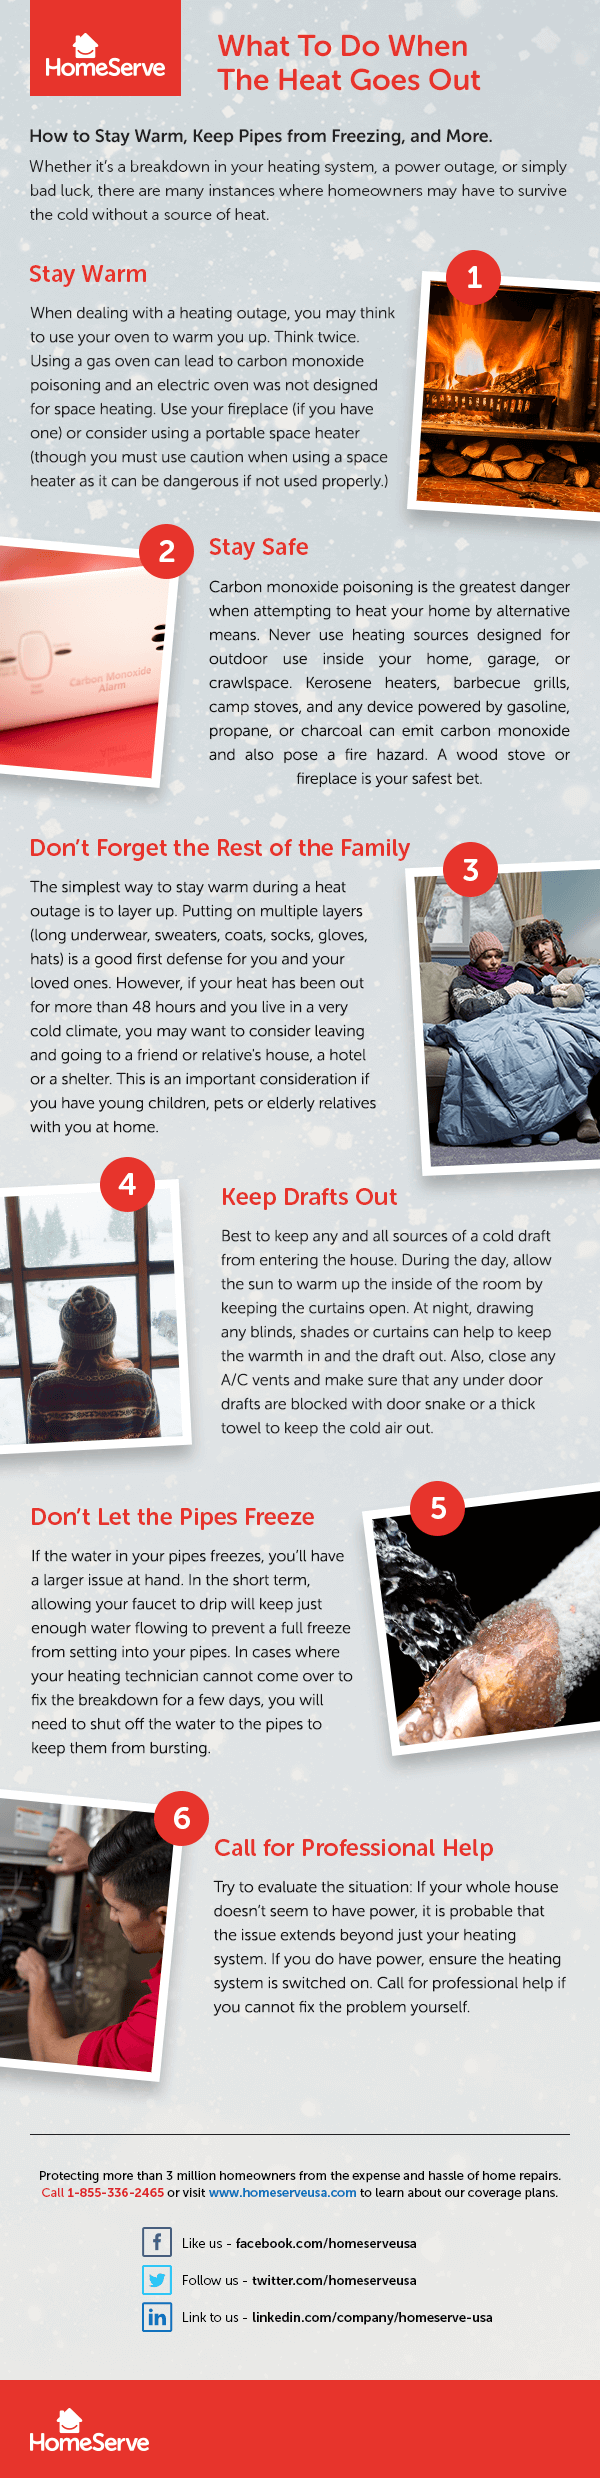 6 tips for staying safe and warm during a power outage or heating system failure